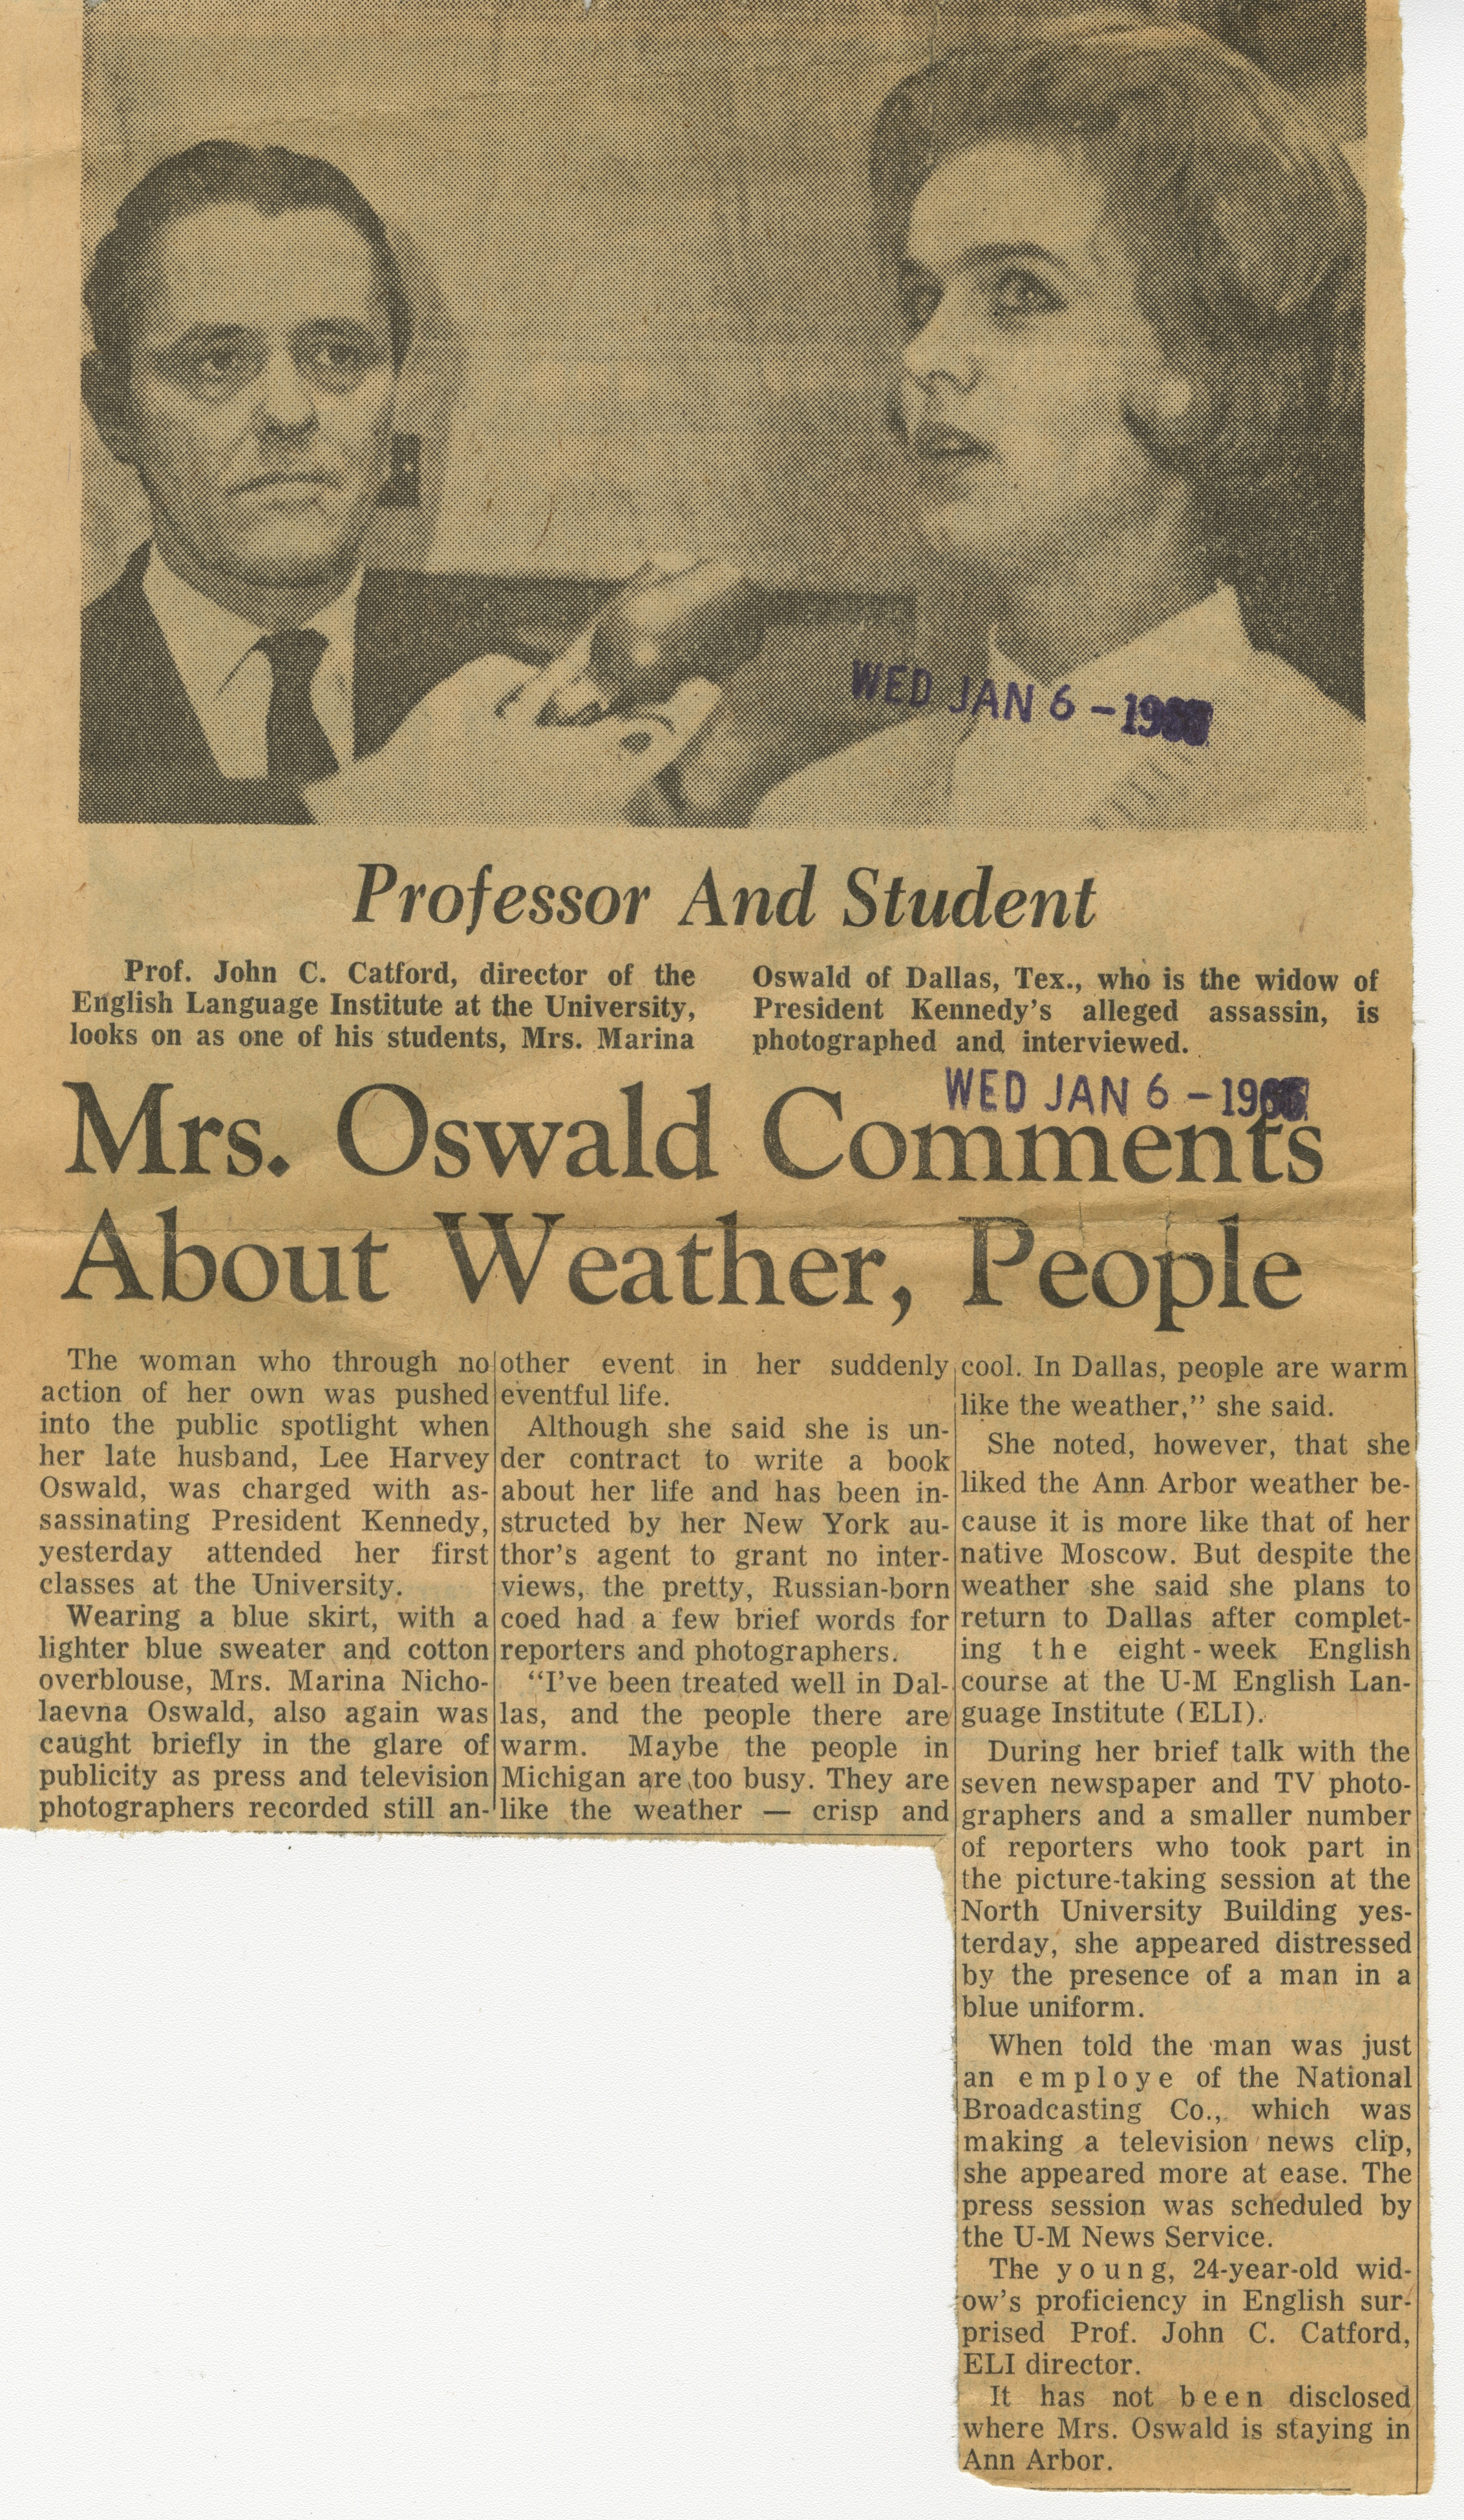 Mrs. Oswald Comments About Weather, People image